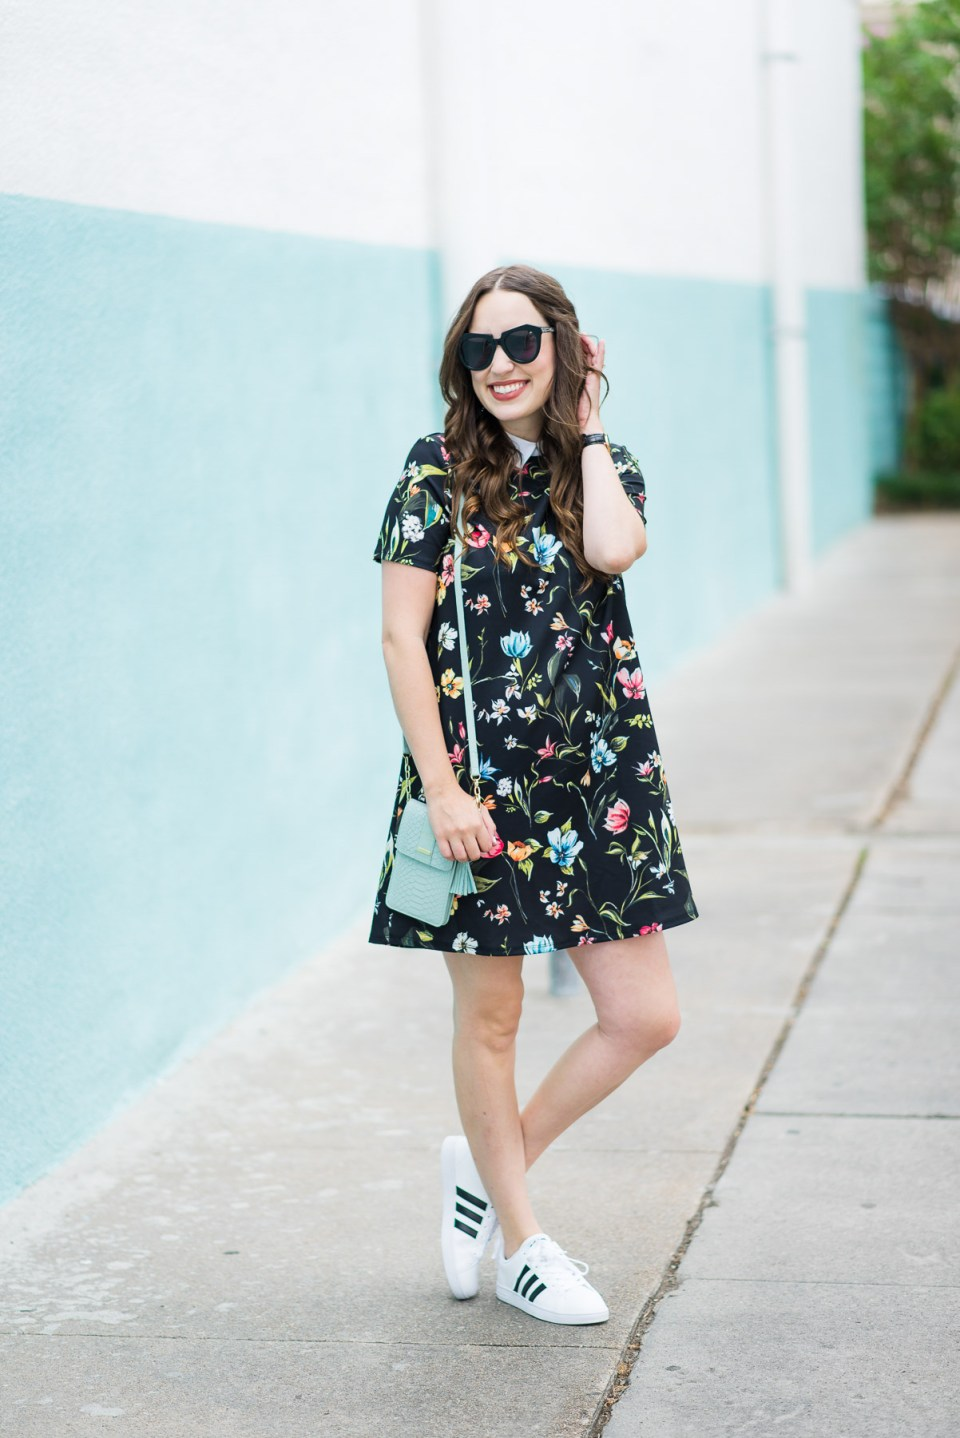 Floral_Shirt_Dress_Adidas_Sneakers-2